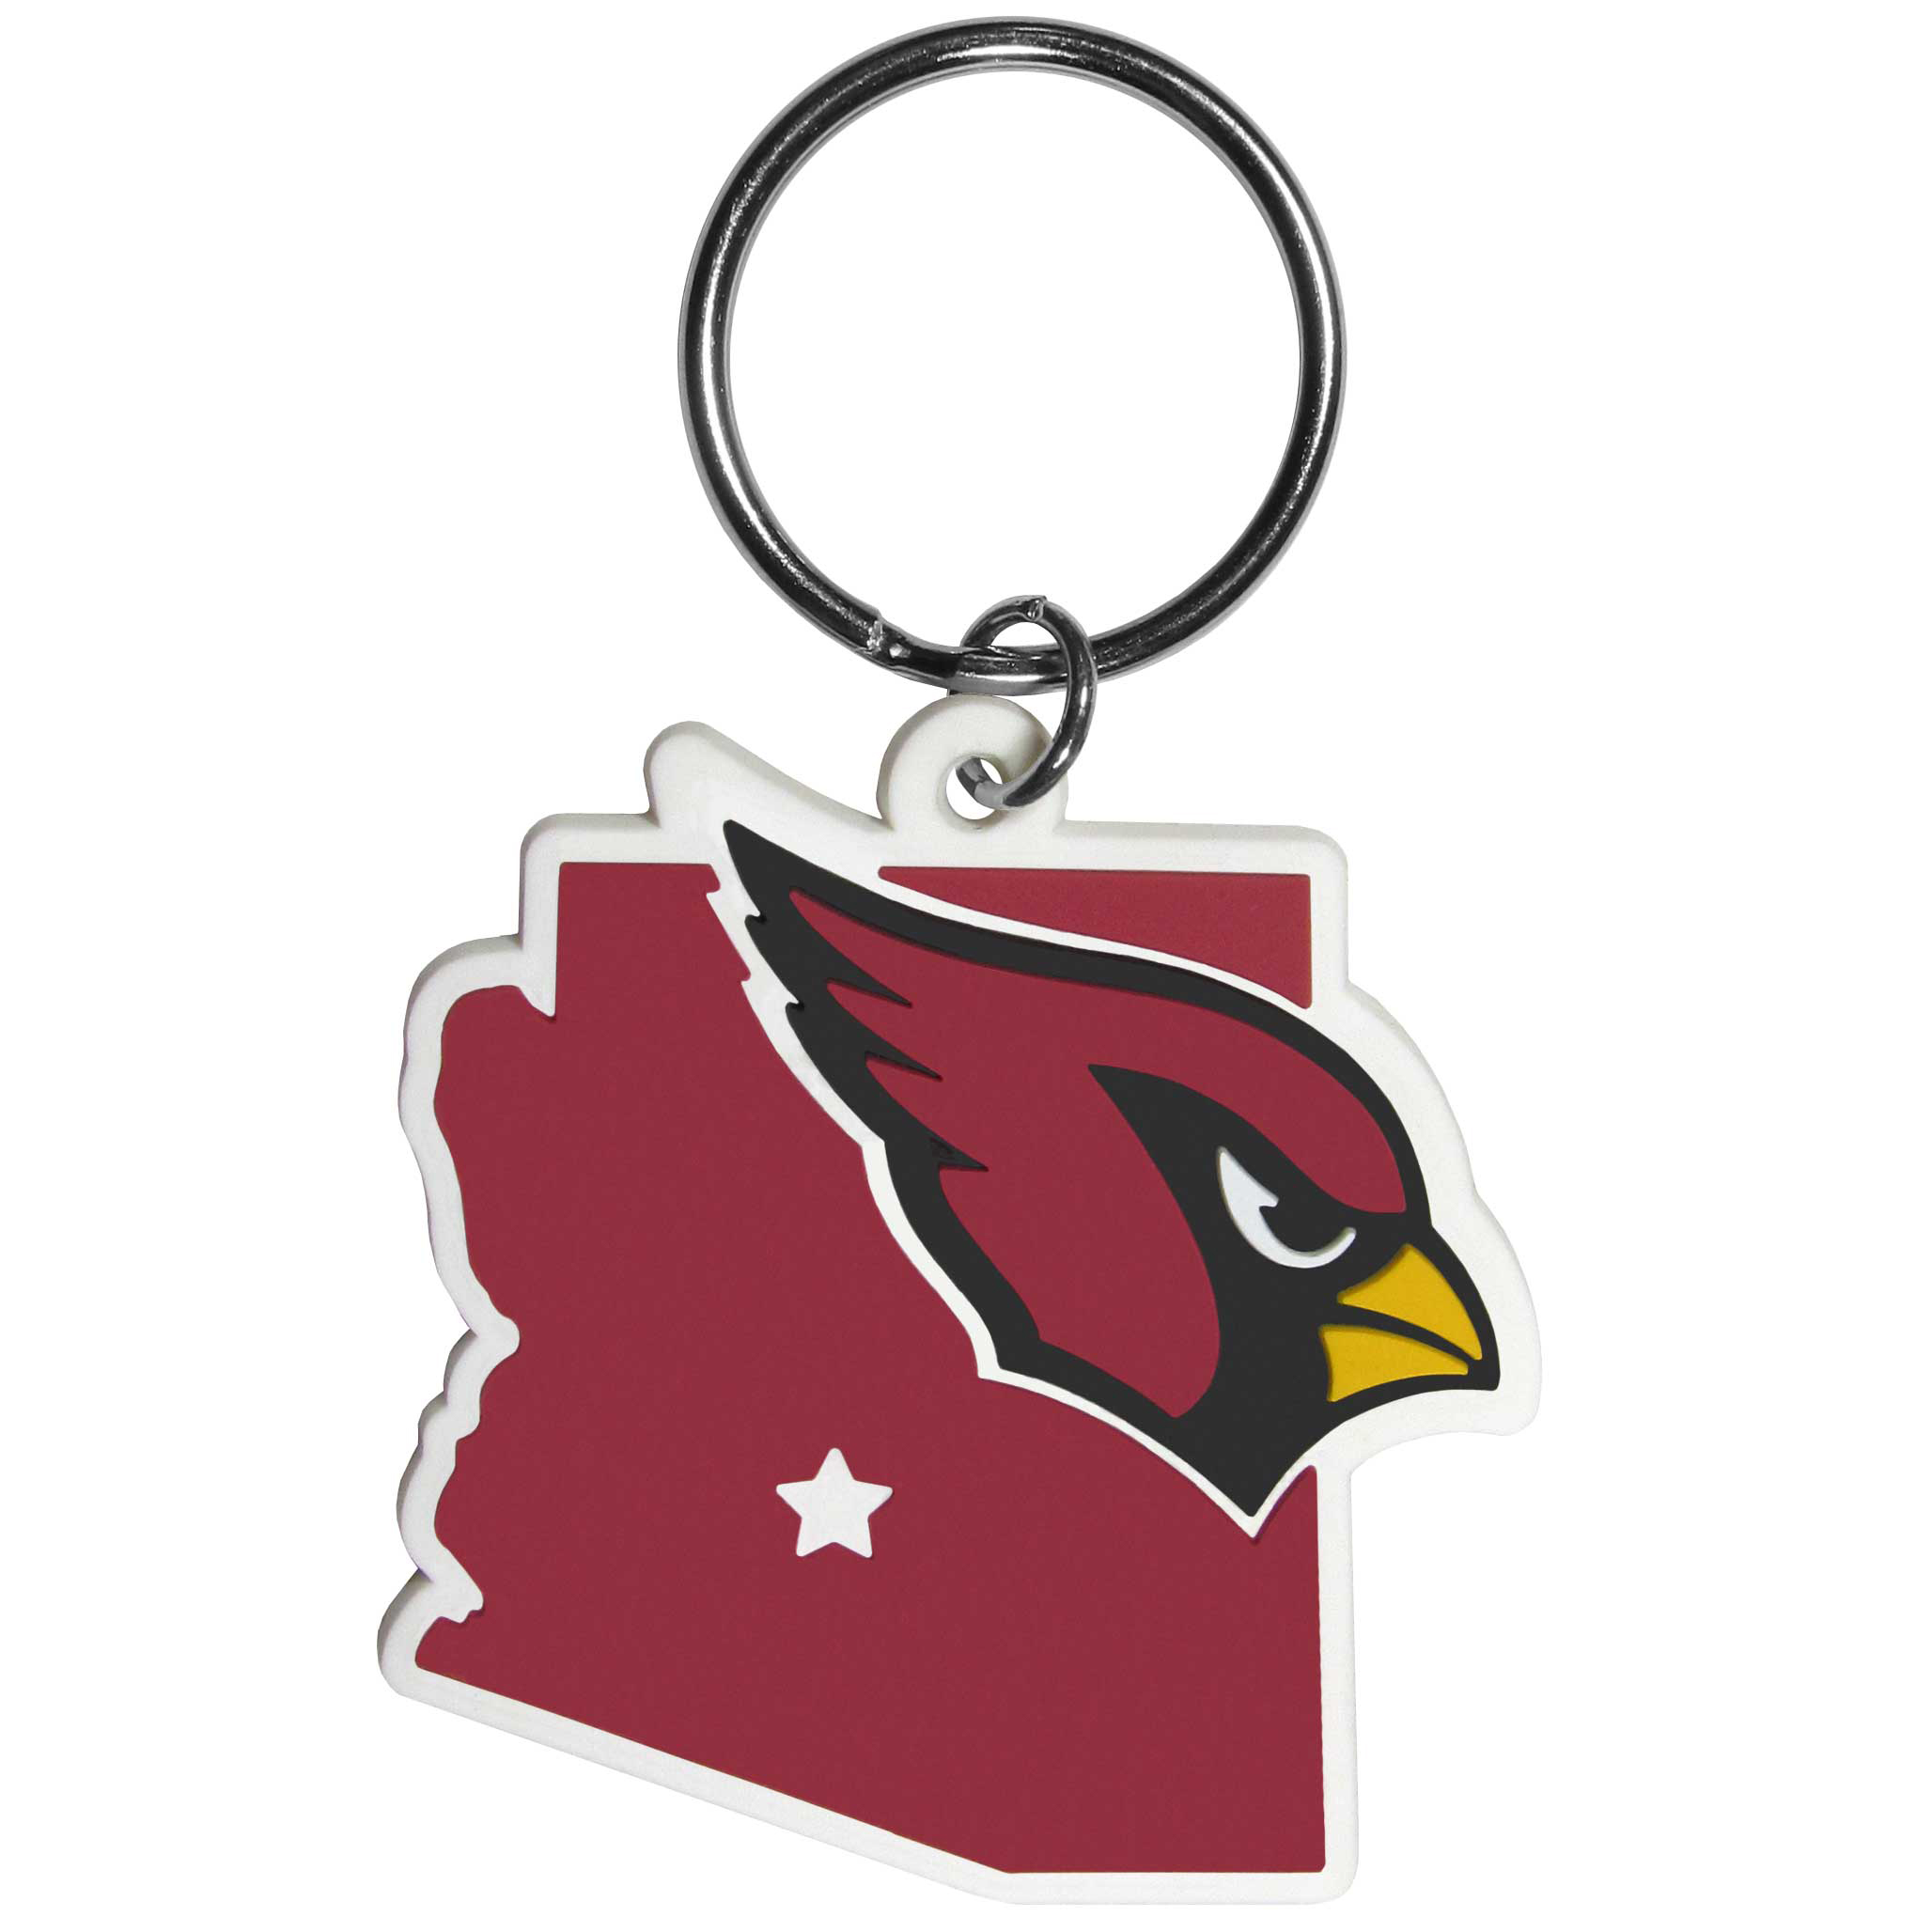 Arizona Cardinals Home State Flexi Key Chain - Our flexible Arizona Cardinals key chains are a fun way to carry your team with you. The pliable rubber material is extremely durable and is the layered colors add a great 3D look to the key chain. This is really where quality and a great price meet to create a true fan favorite.